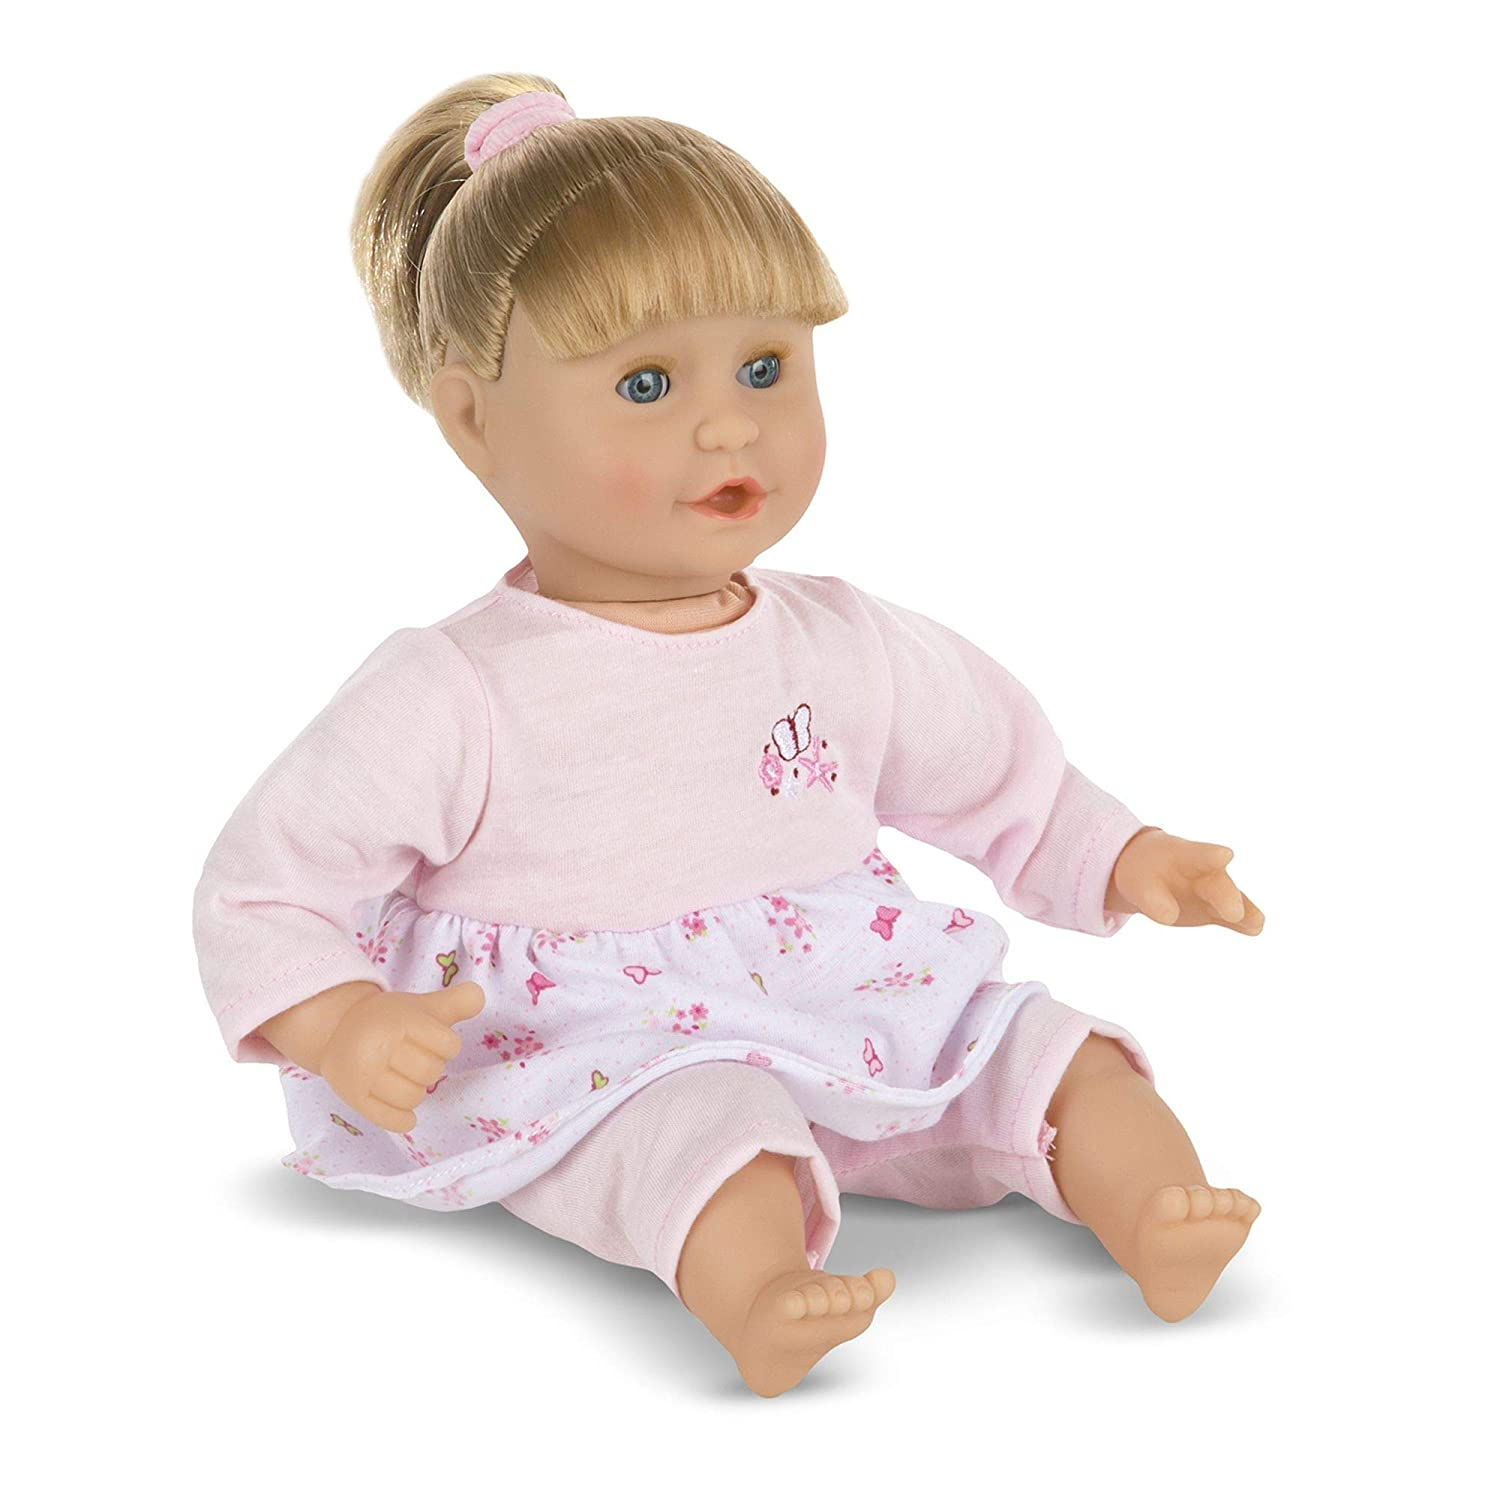 Melissa Doug Mine To Love Natalie 12 Inch Soft Body Baby Doll With Hair And Outfit